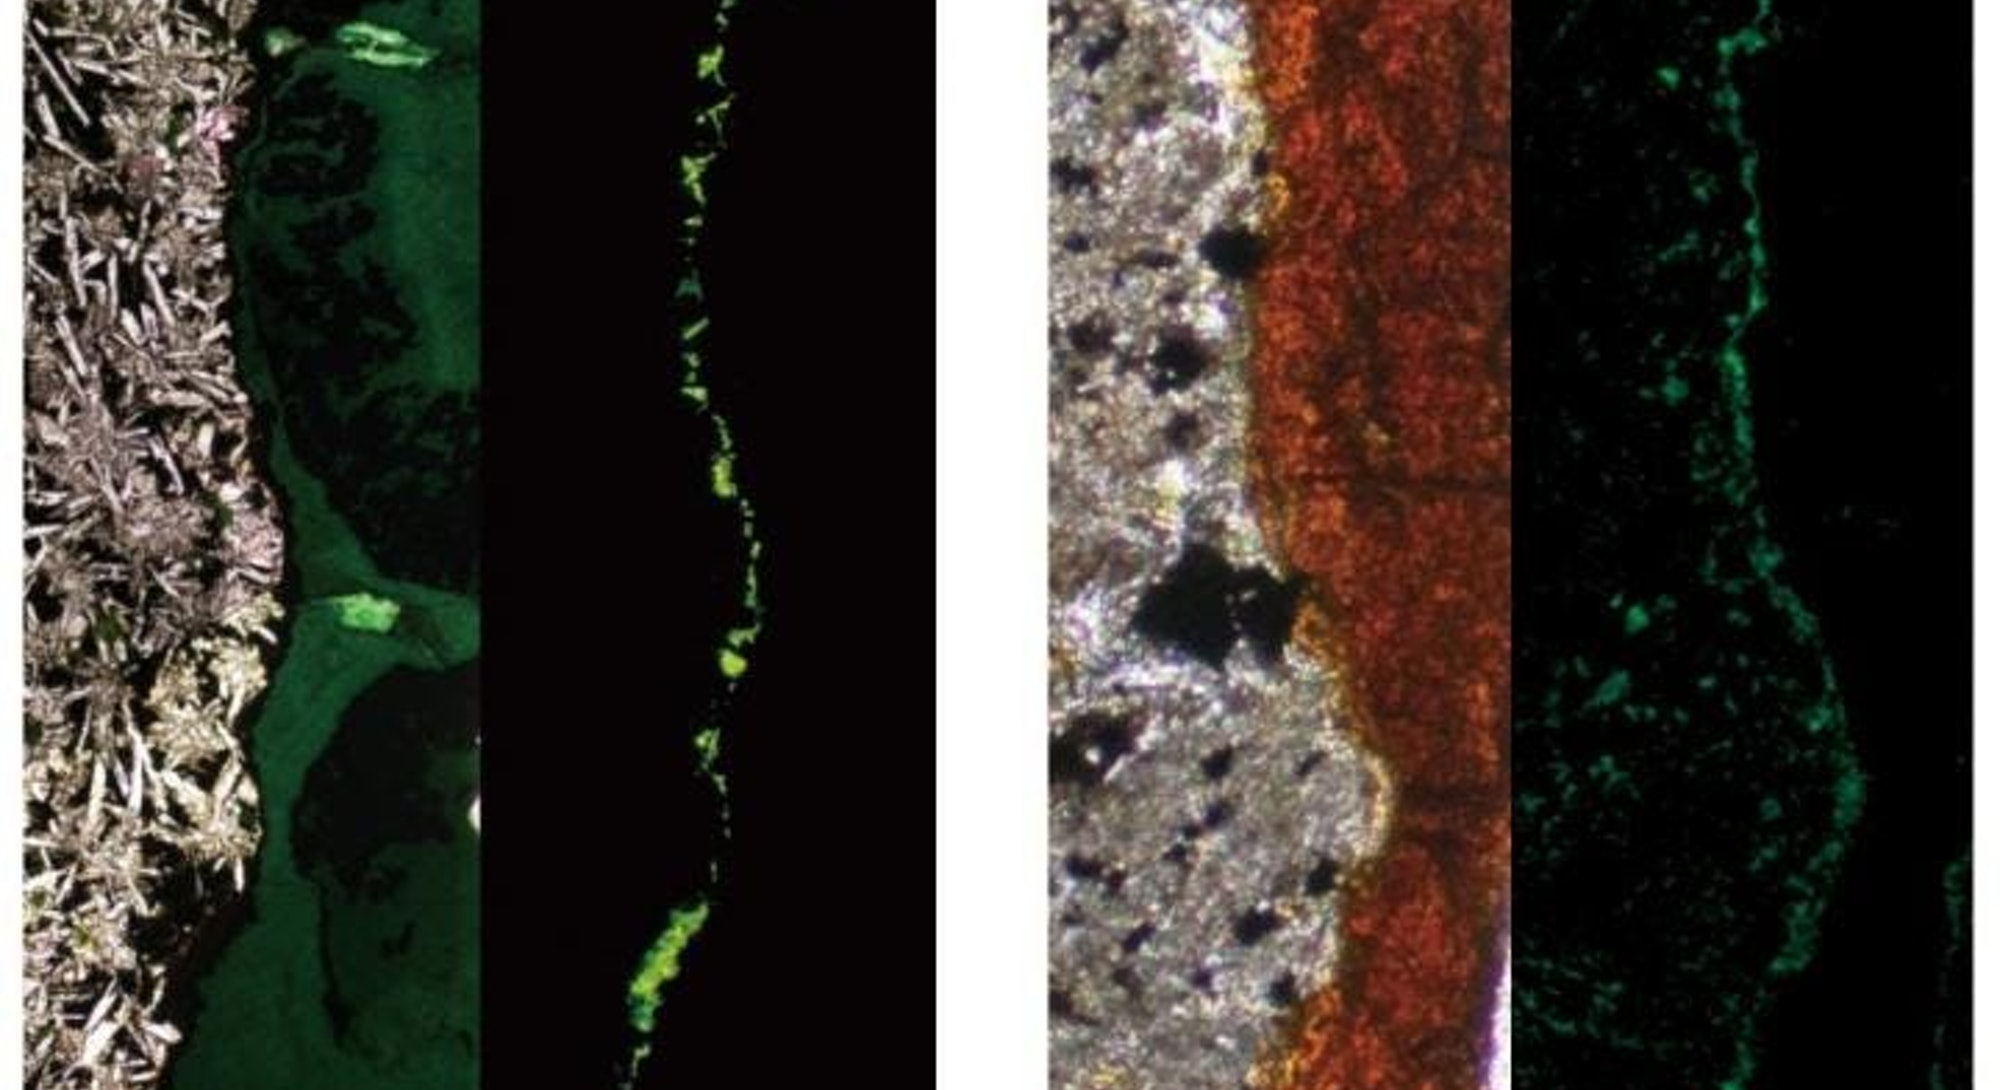 A colony of tiny microbial life that was found wedged in tunnels on volcanic rock samples.